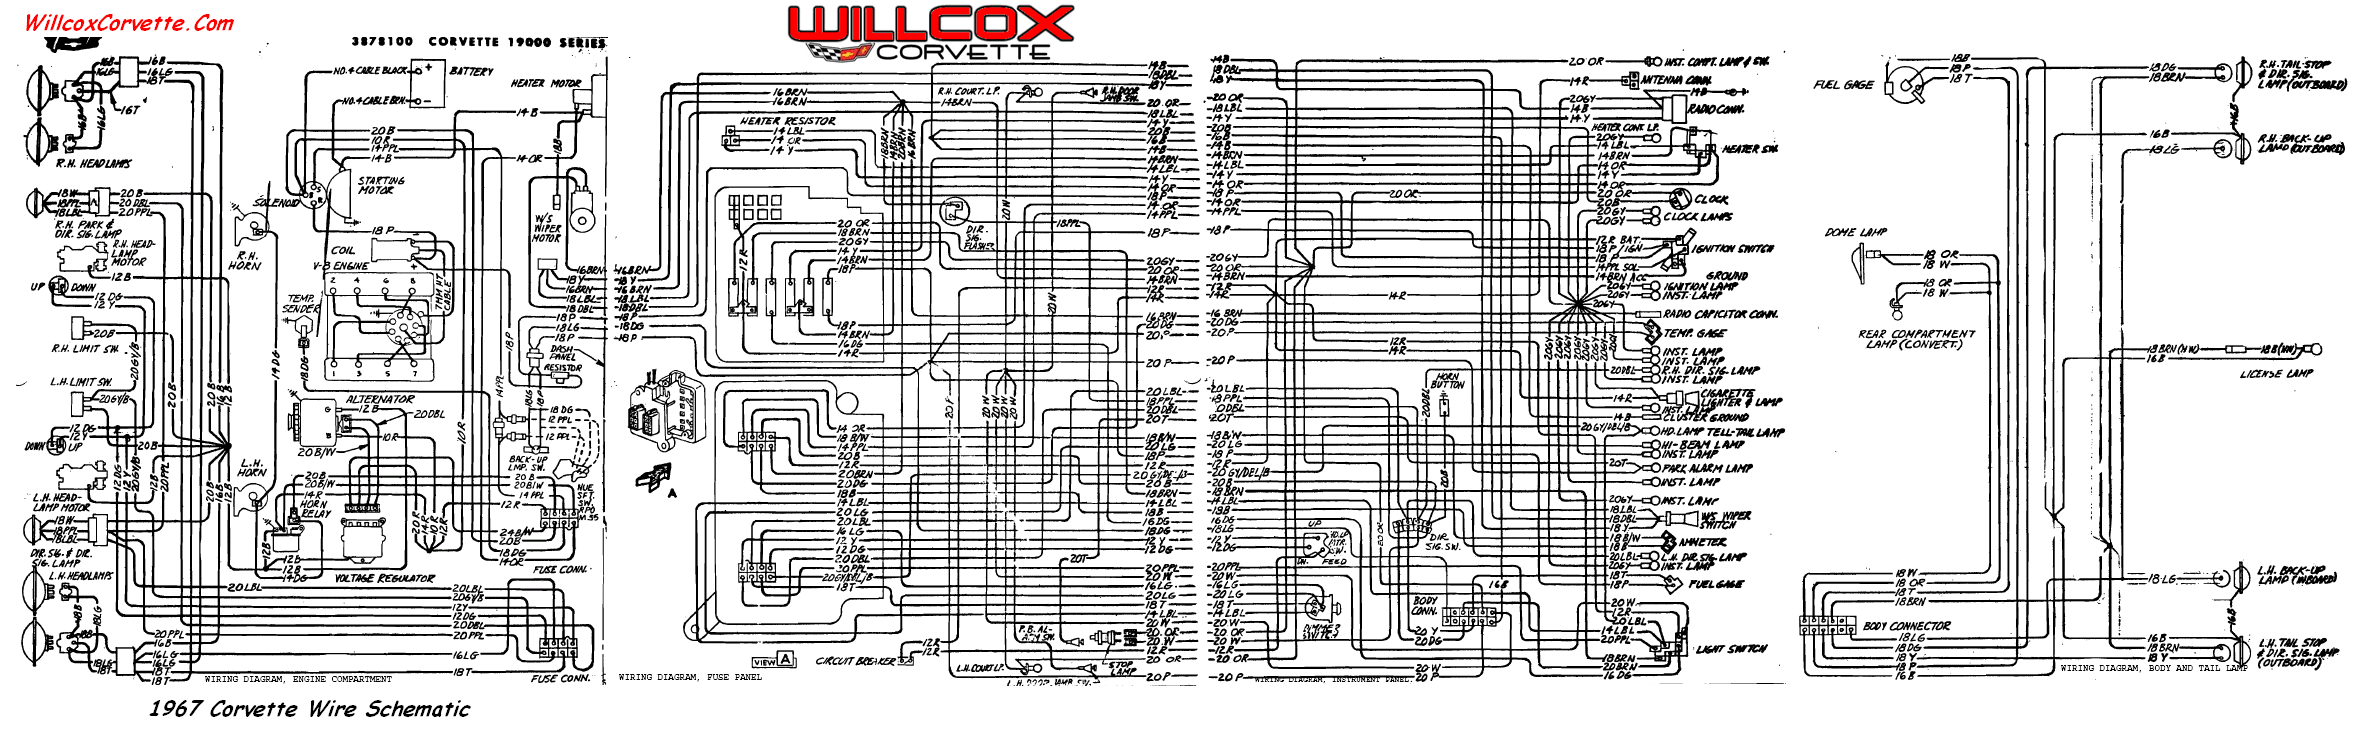 Swell 1966 Corvette Fuse Box Diagram Wiring Library Wiring Cloud Hisonepsysticxongrecoveryedborg